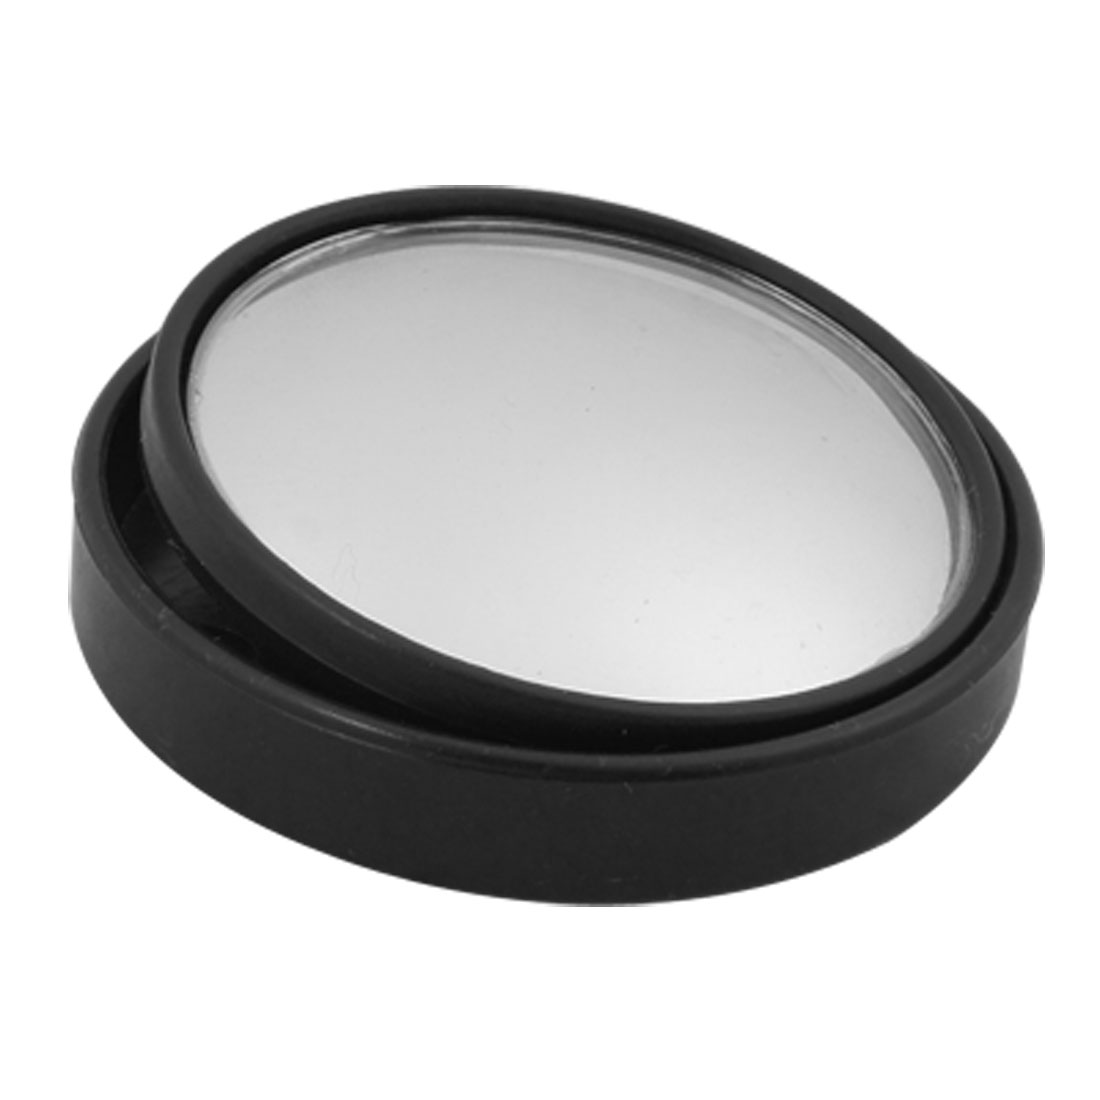 360 Degree Rotatable Black Blind Spot Safety Mirror for Car